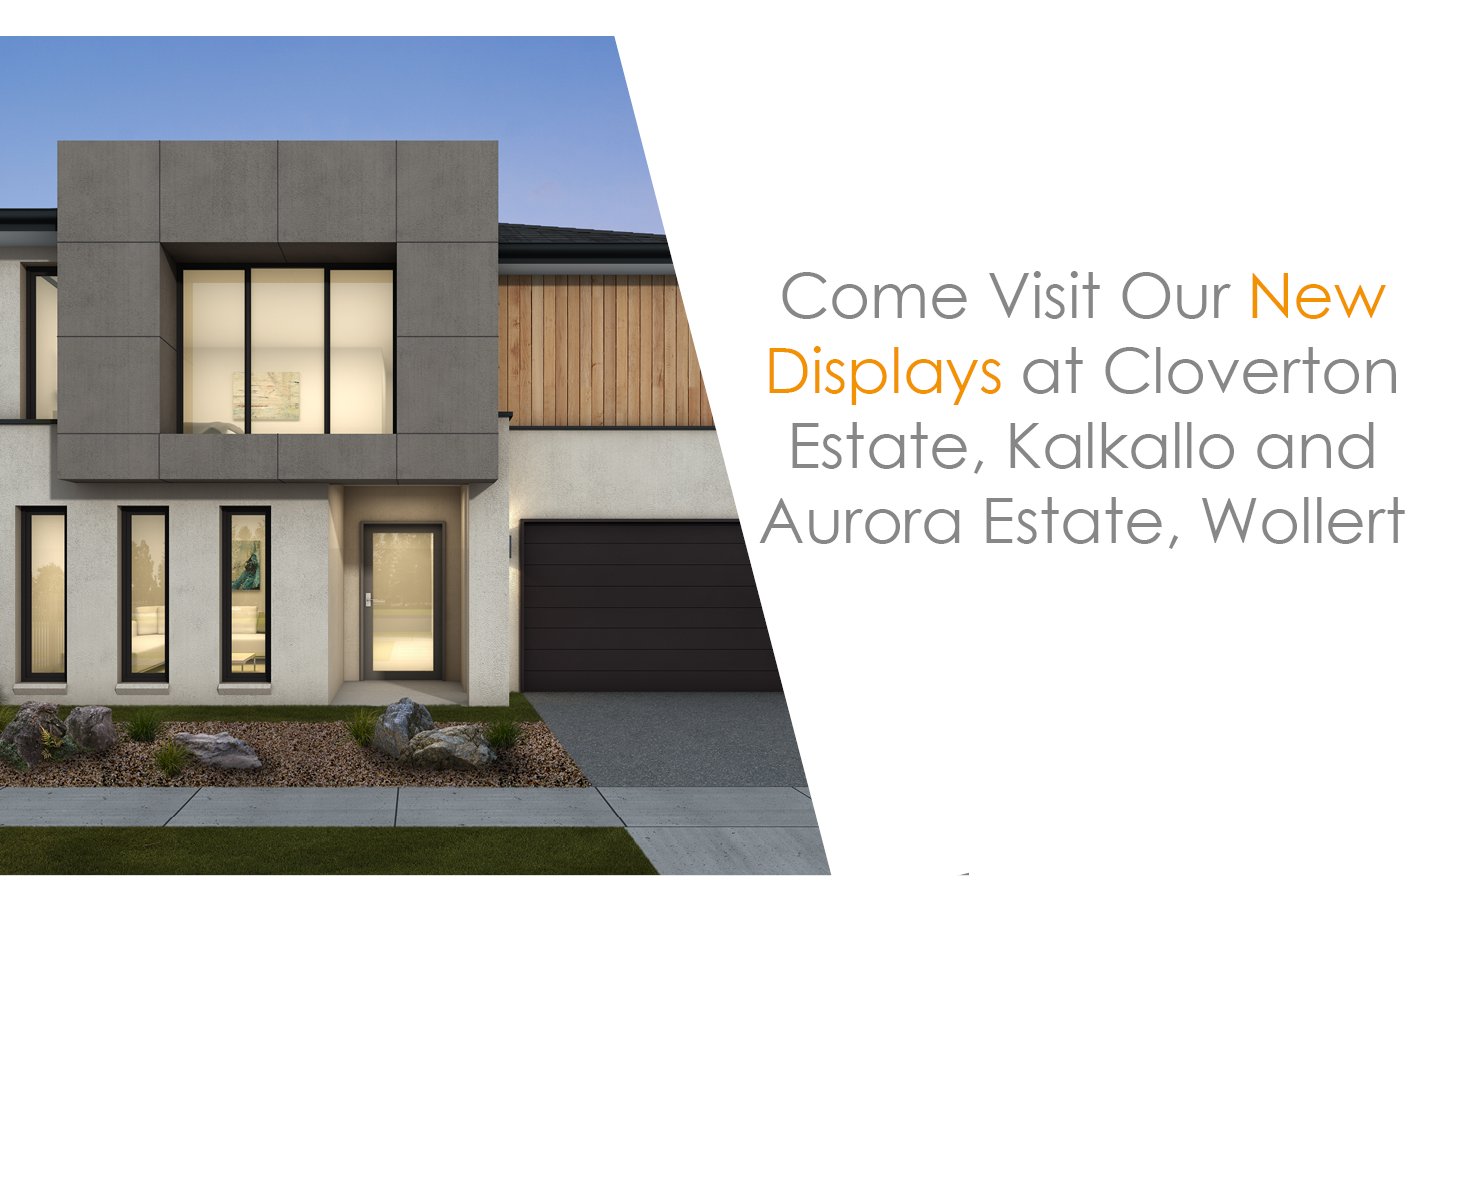 Come-Visit-our-new-displays-at-cloverton-estate-kalkallo-and-aston-estate-wollert